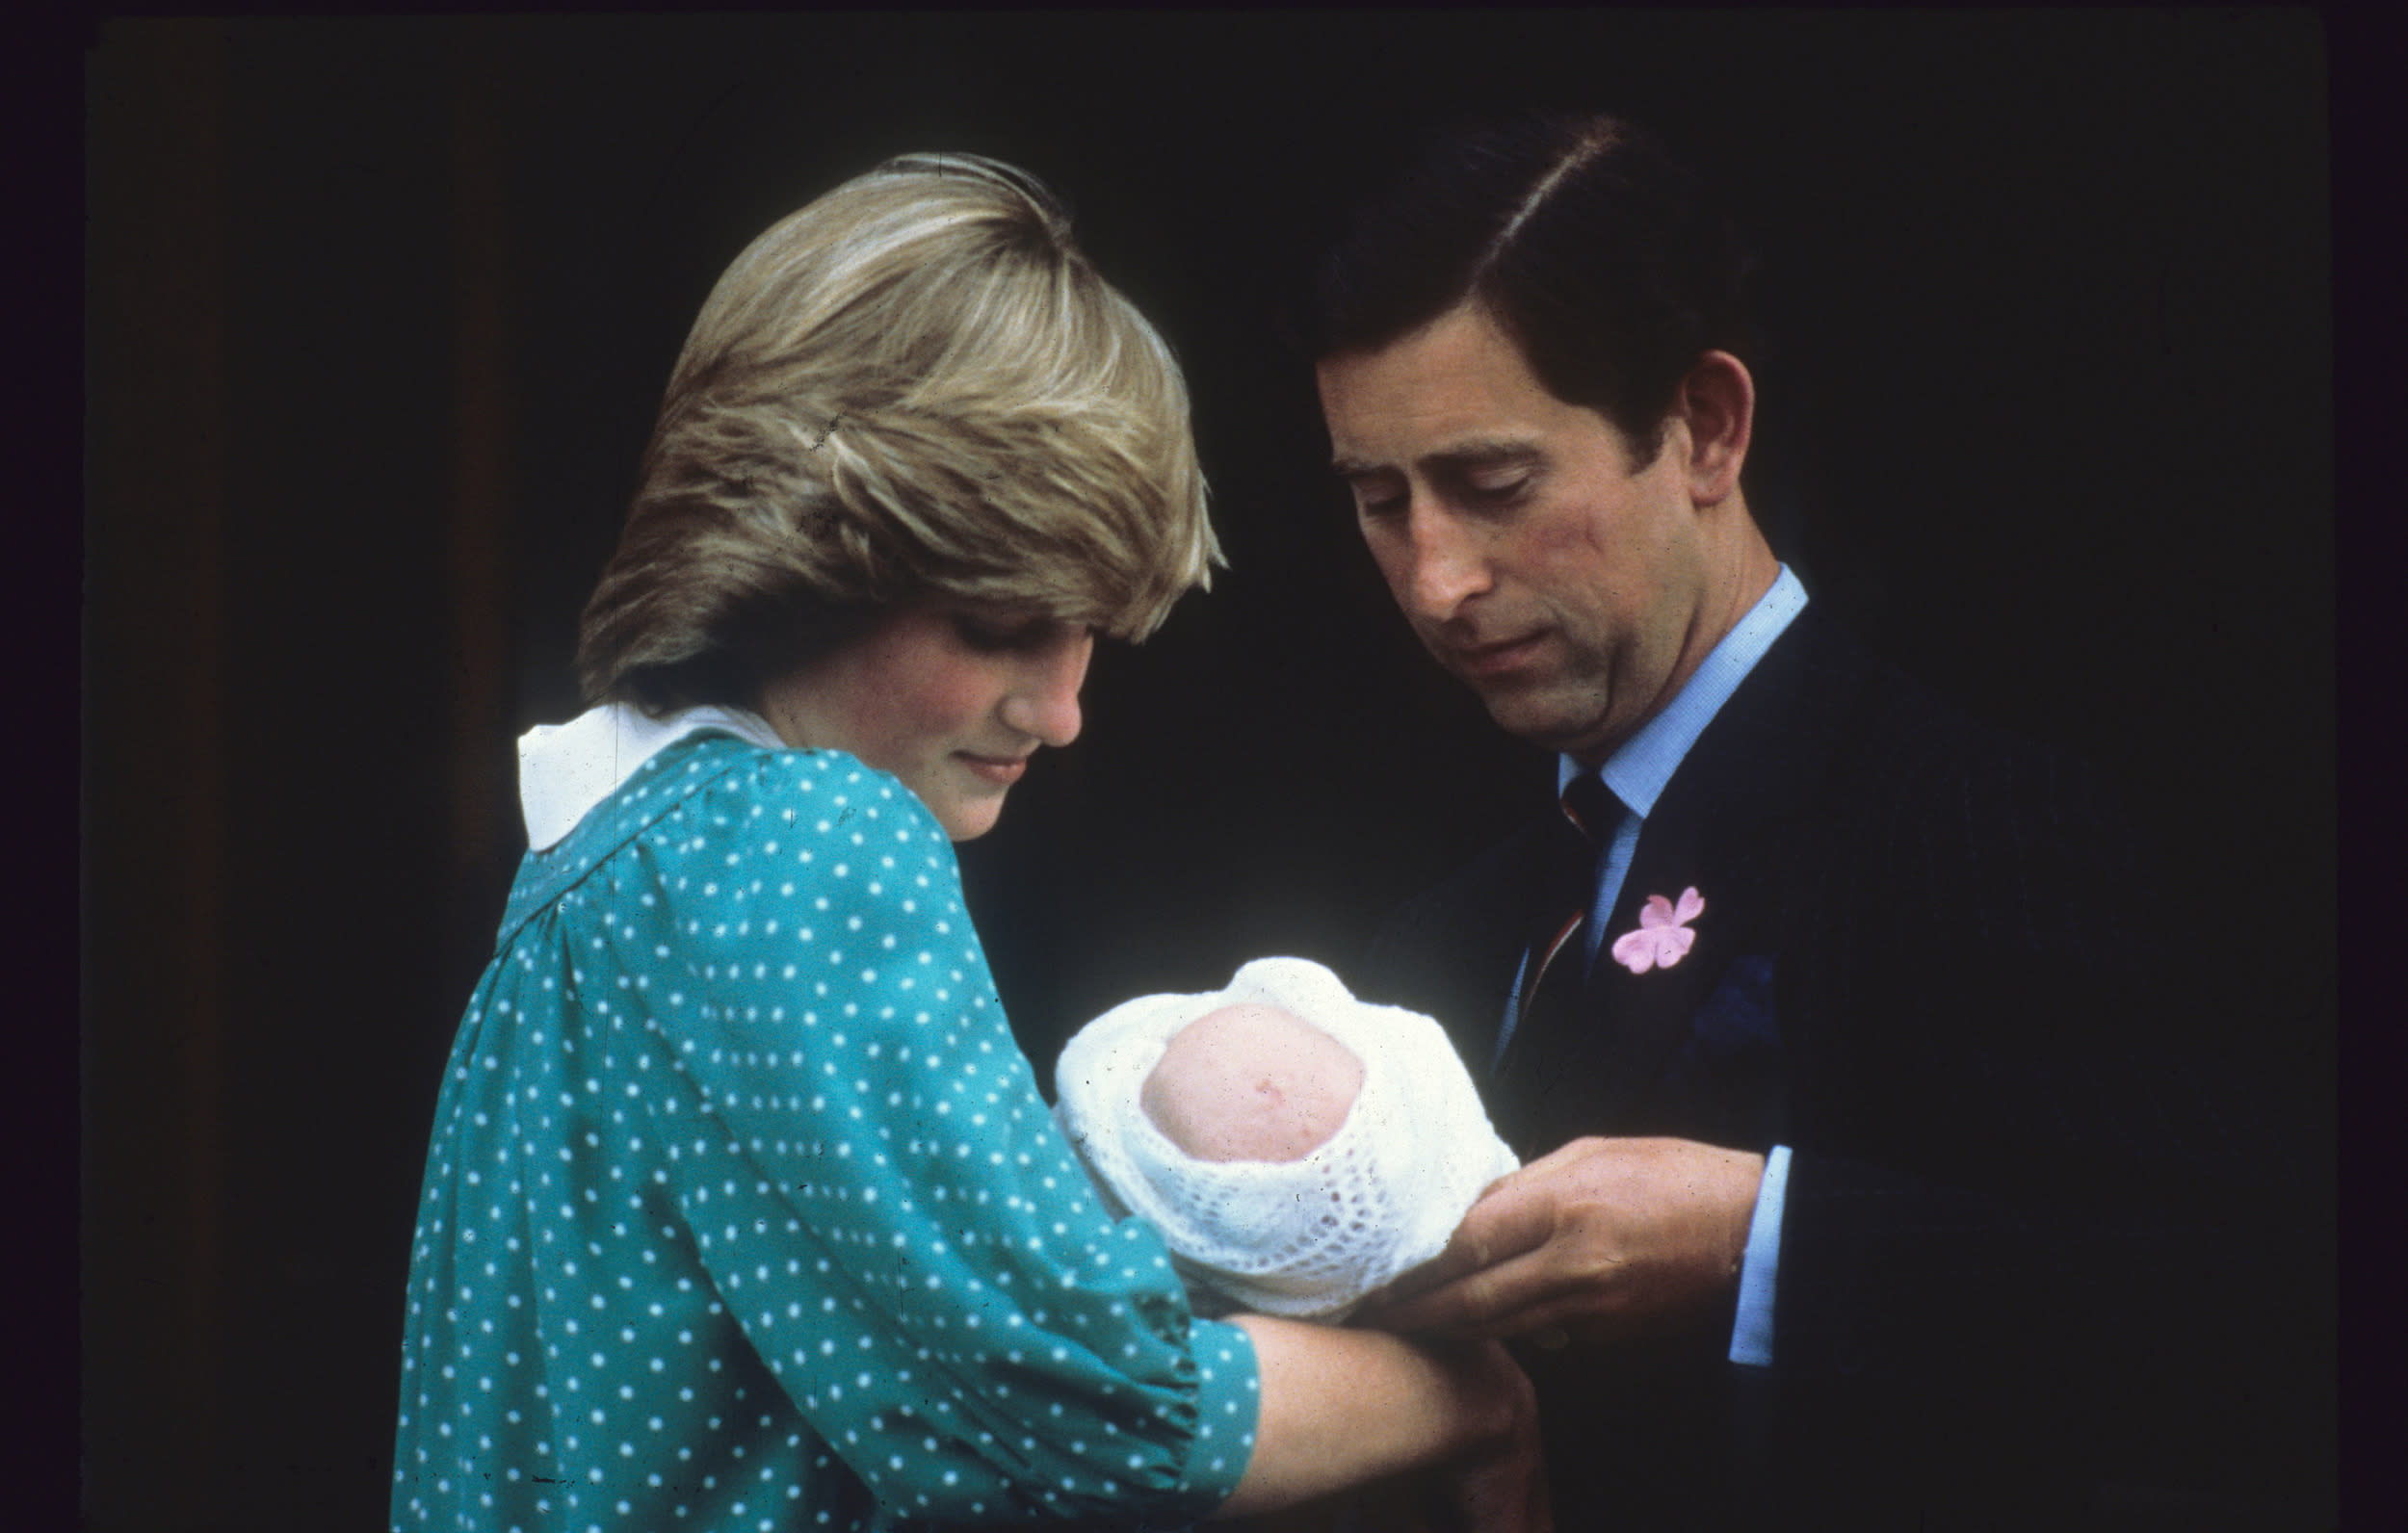 LONDON, UNITED KINGDOM - JULY 22:  Prince Charles, Prince of Wales and Diana, Princess of Wales leave the Lindo Wing St Mary's Hospital with baby Prince William on July 22, 1982 in London, England. (Photo by Anwar Hussein/Getty Images)